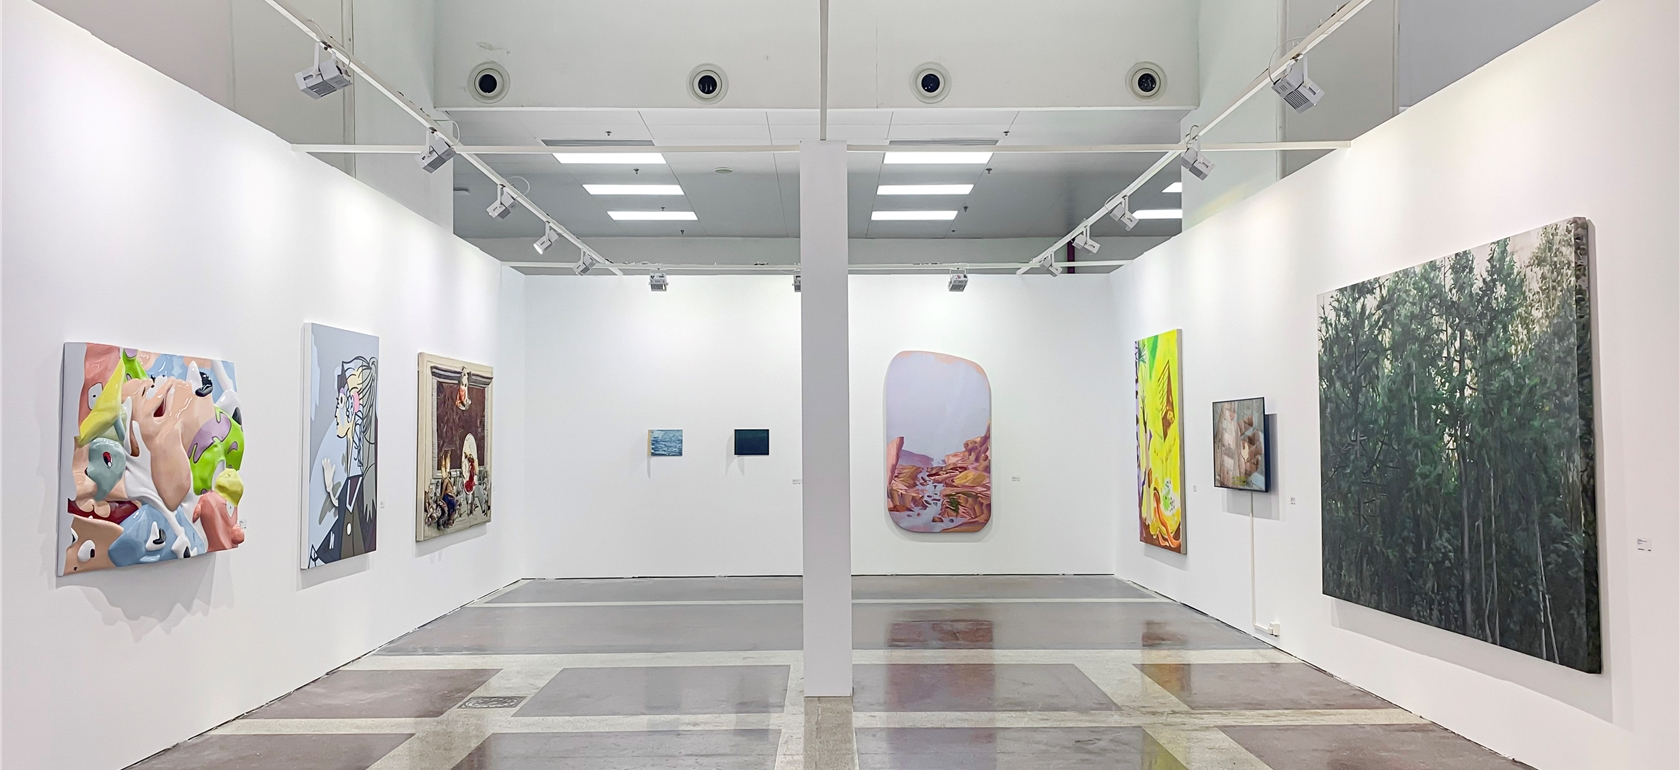 MadeIn Gallery Participates in JINGART 2021